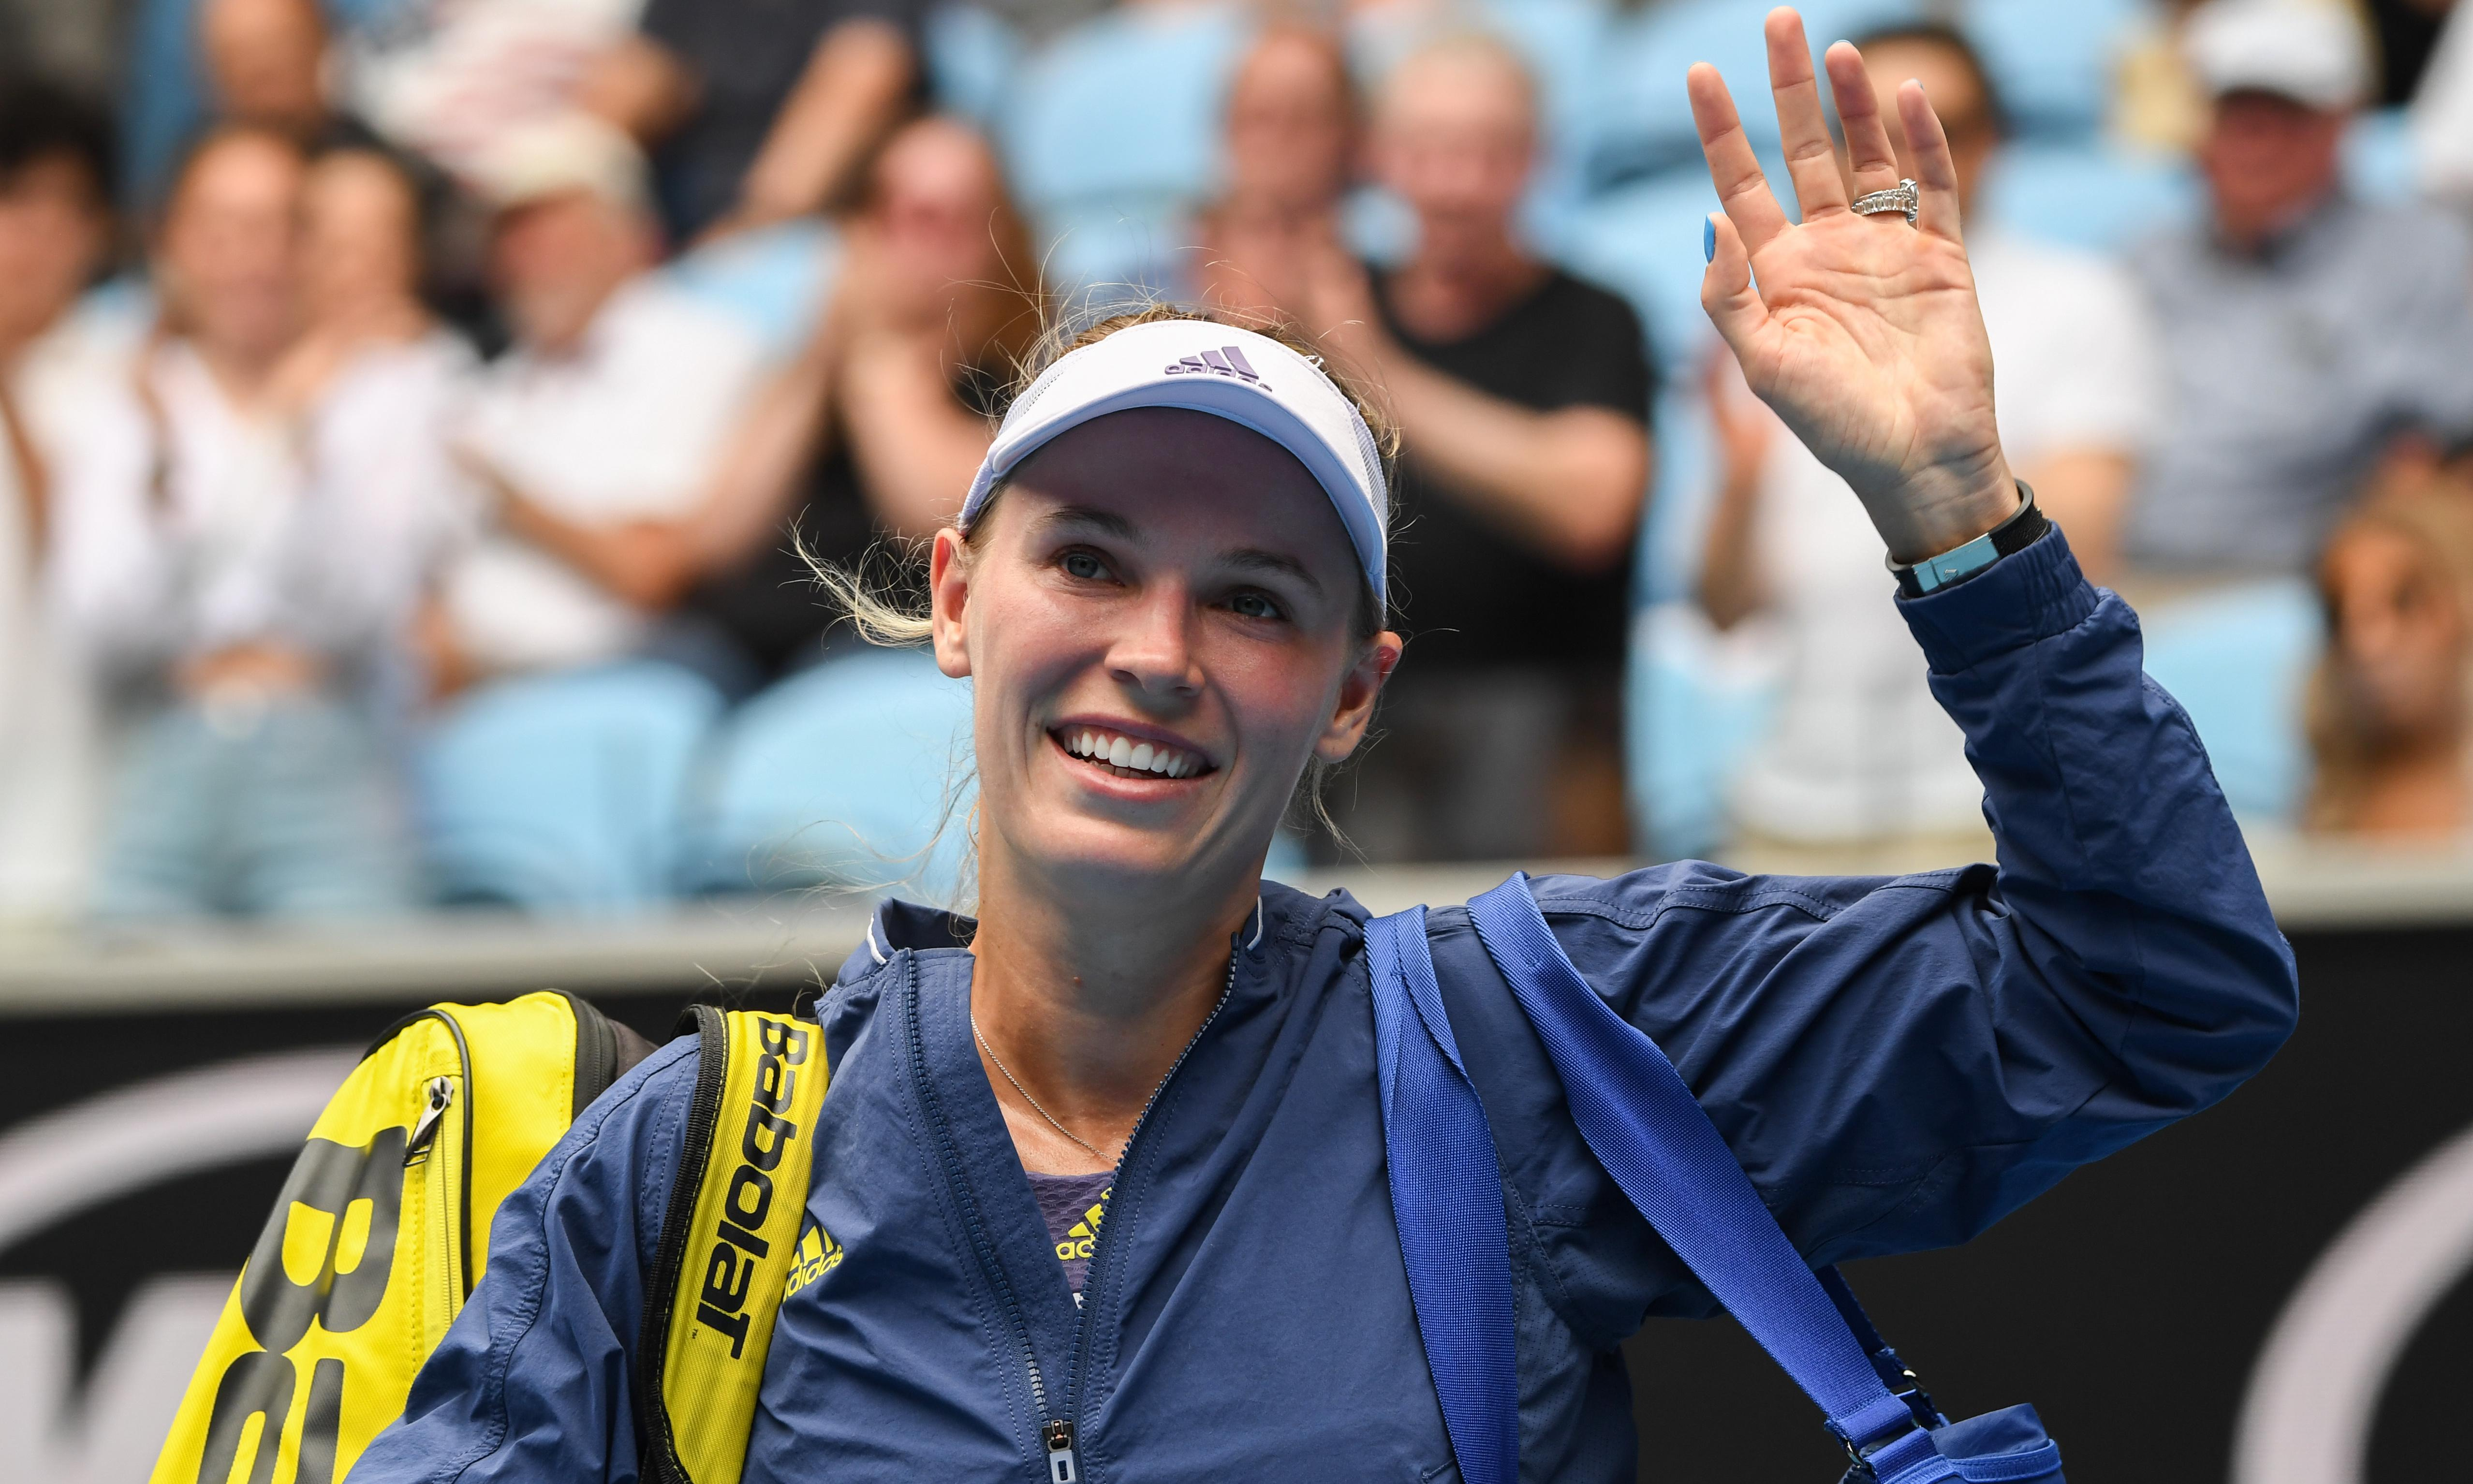 Caroline Wozniacki: 'Tennis is what I've done my whole life … it's crazy it's coming to an end'